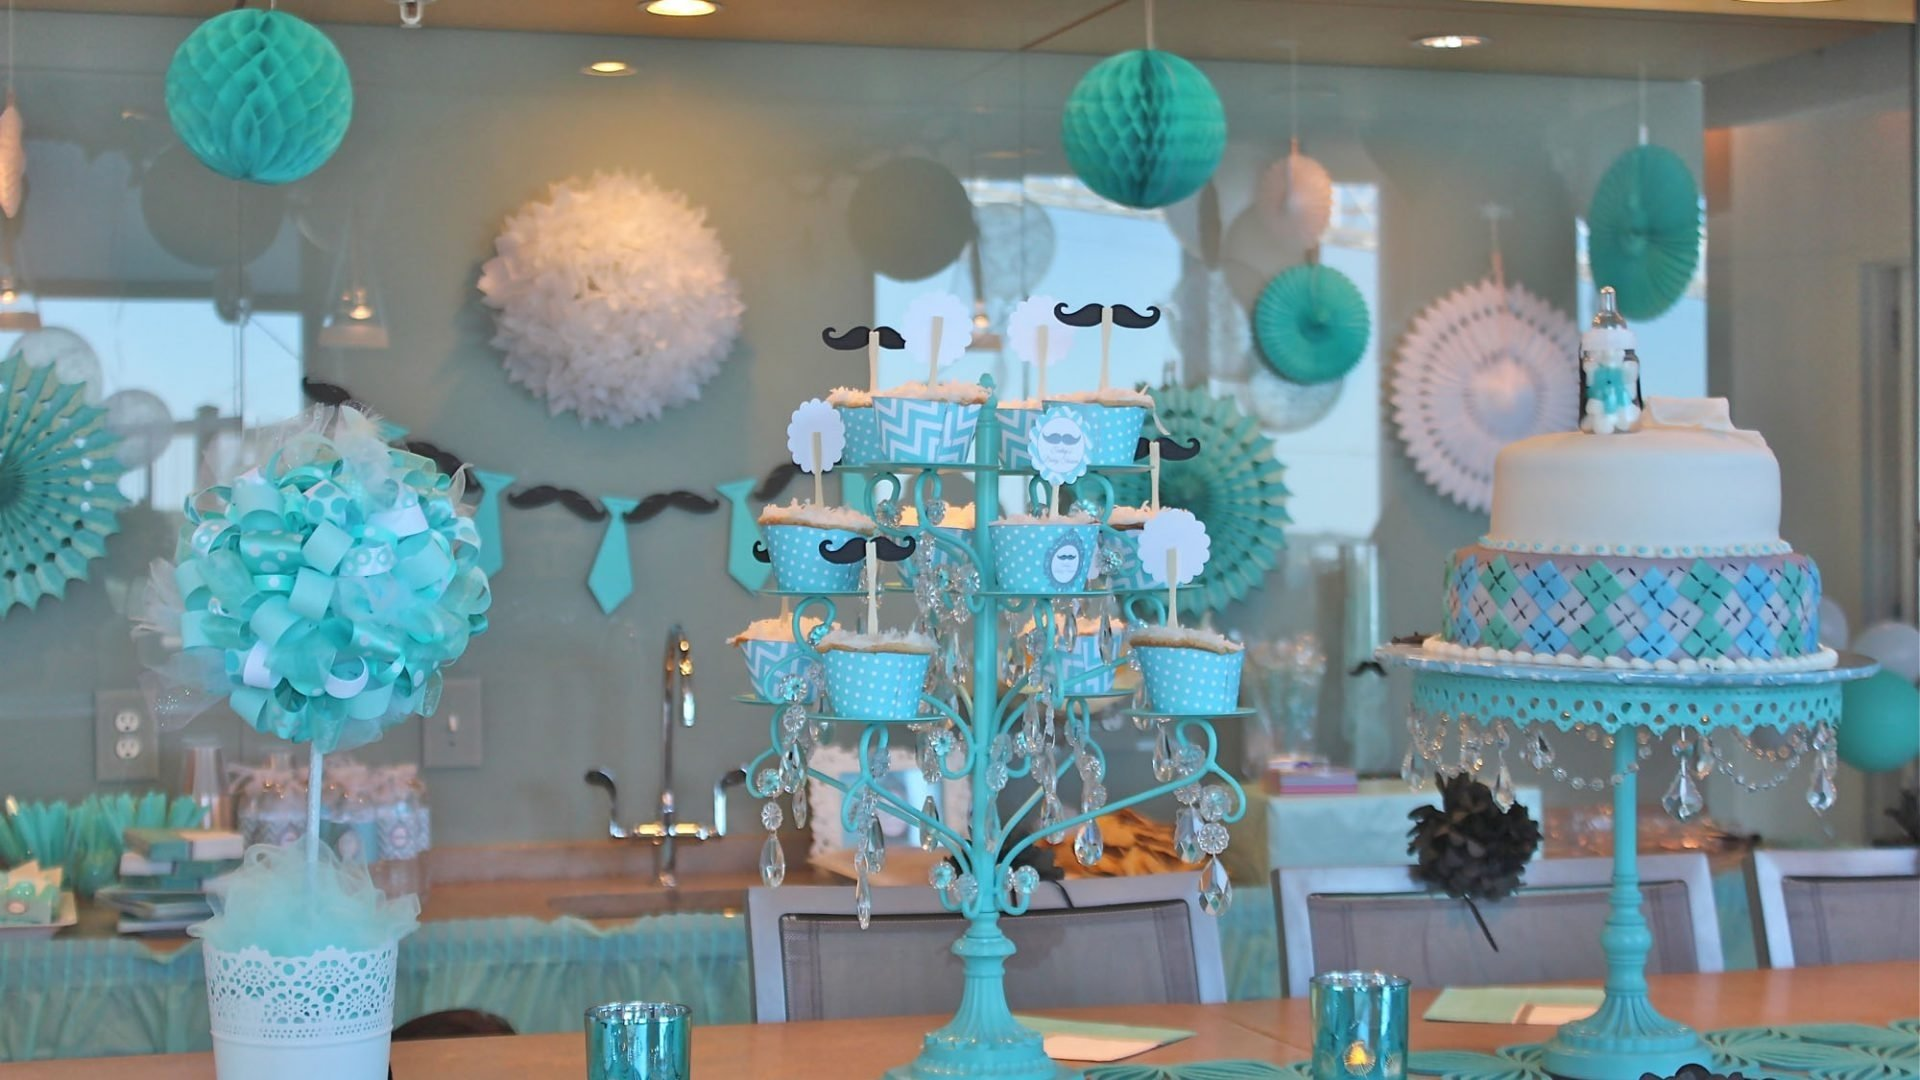 10 Attractive Decorating Ideas For A Baby Shower ideas boy baby shower decor cover magnificent decoration aztec 2021